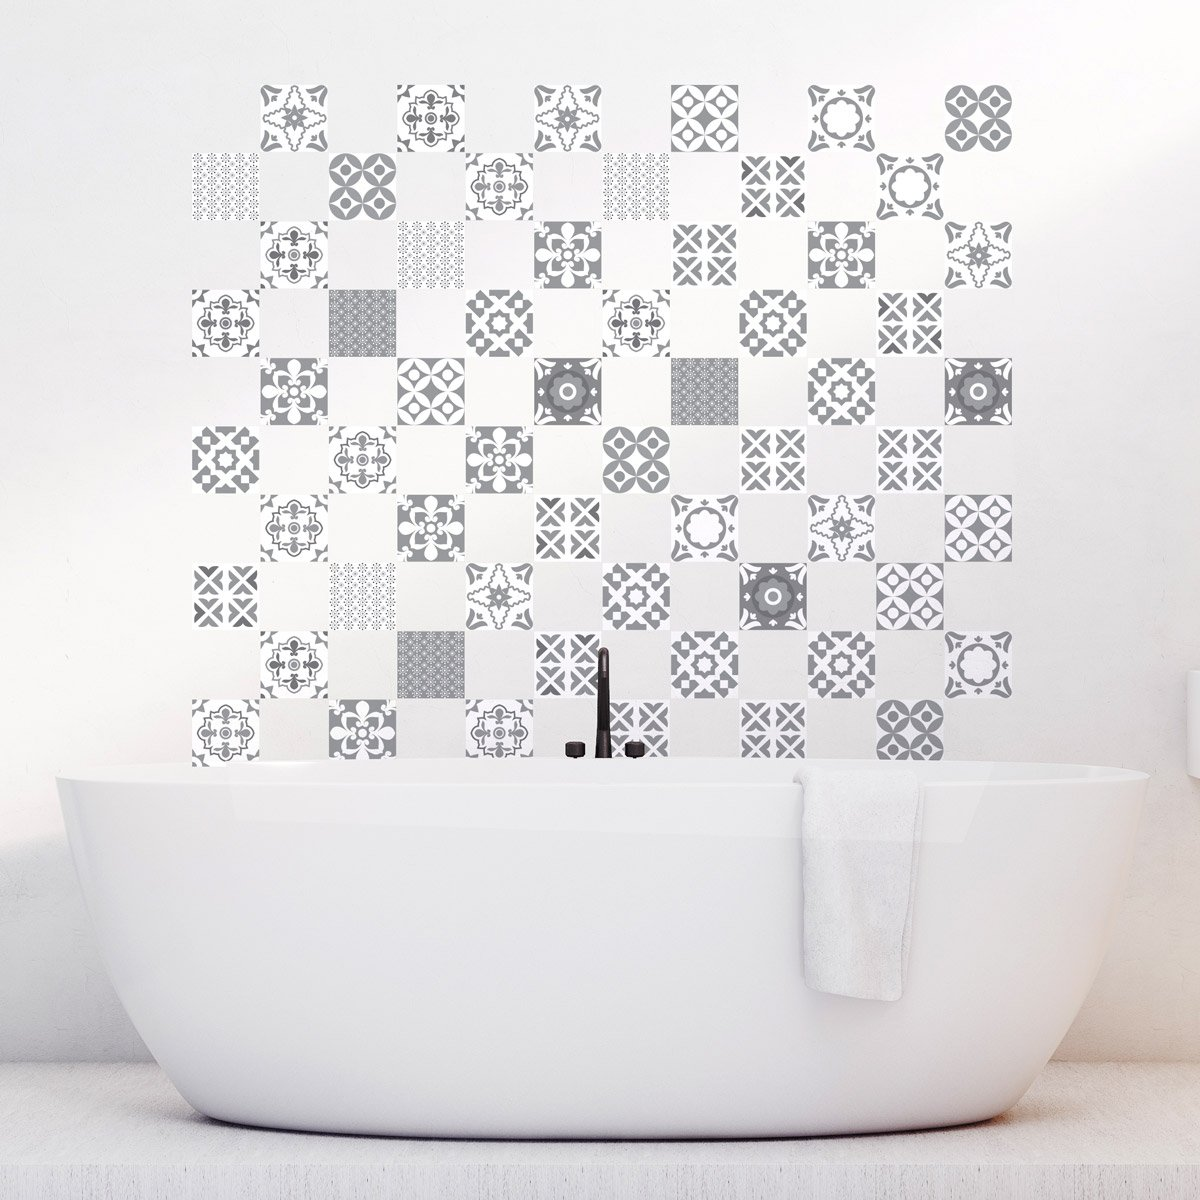 60Adhesive Tile Stickers For Bathroom and Kitchen Tiles, Mosaic, Artistic, Shades Of Grey, 10 x 10 cm, 60 Items. Ambiance-Live